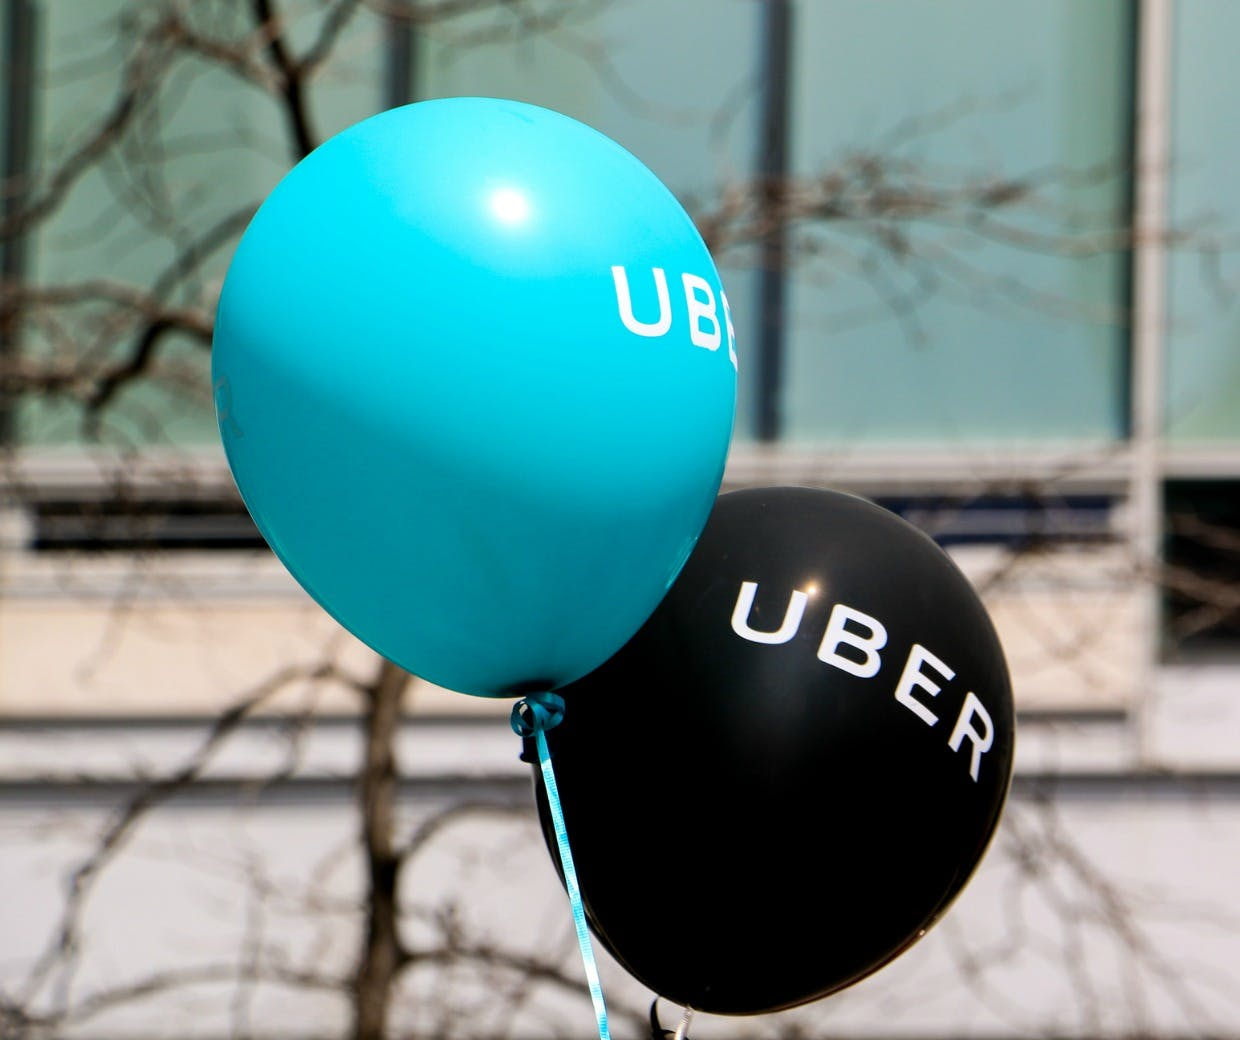 Uber, Instagram & Protein World: 5 things that mattered this week